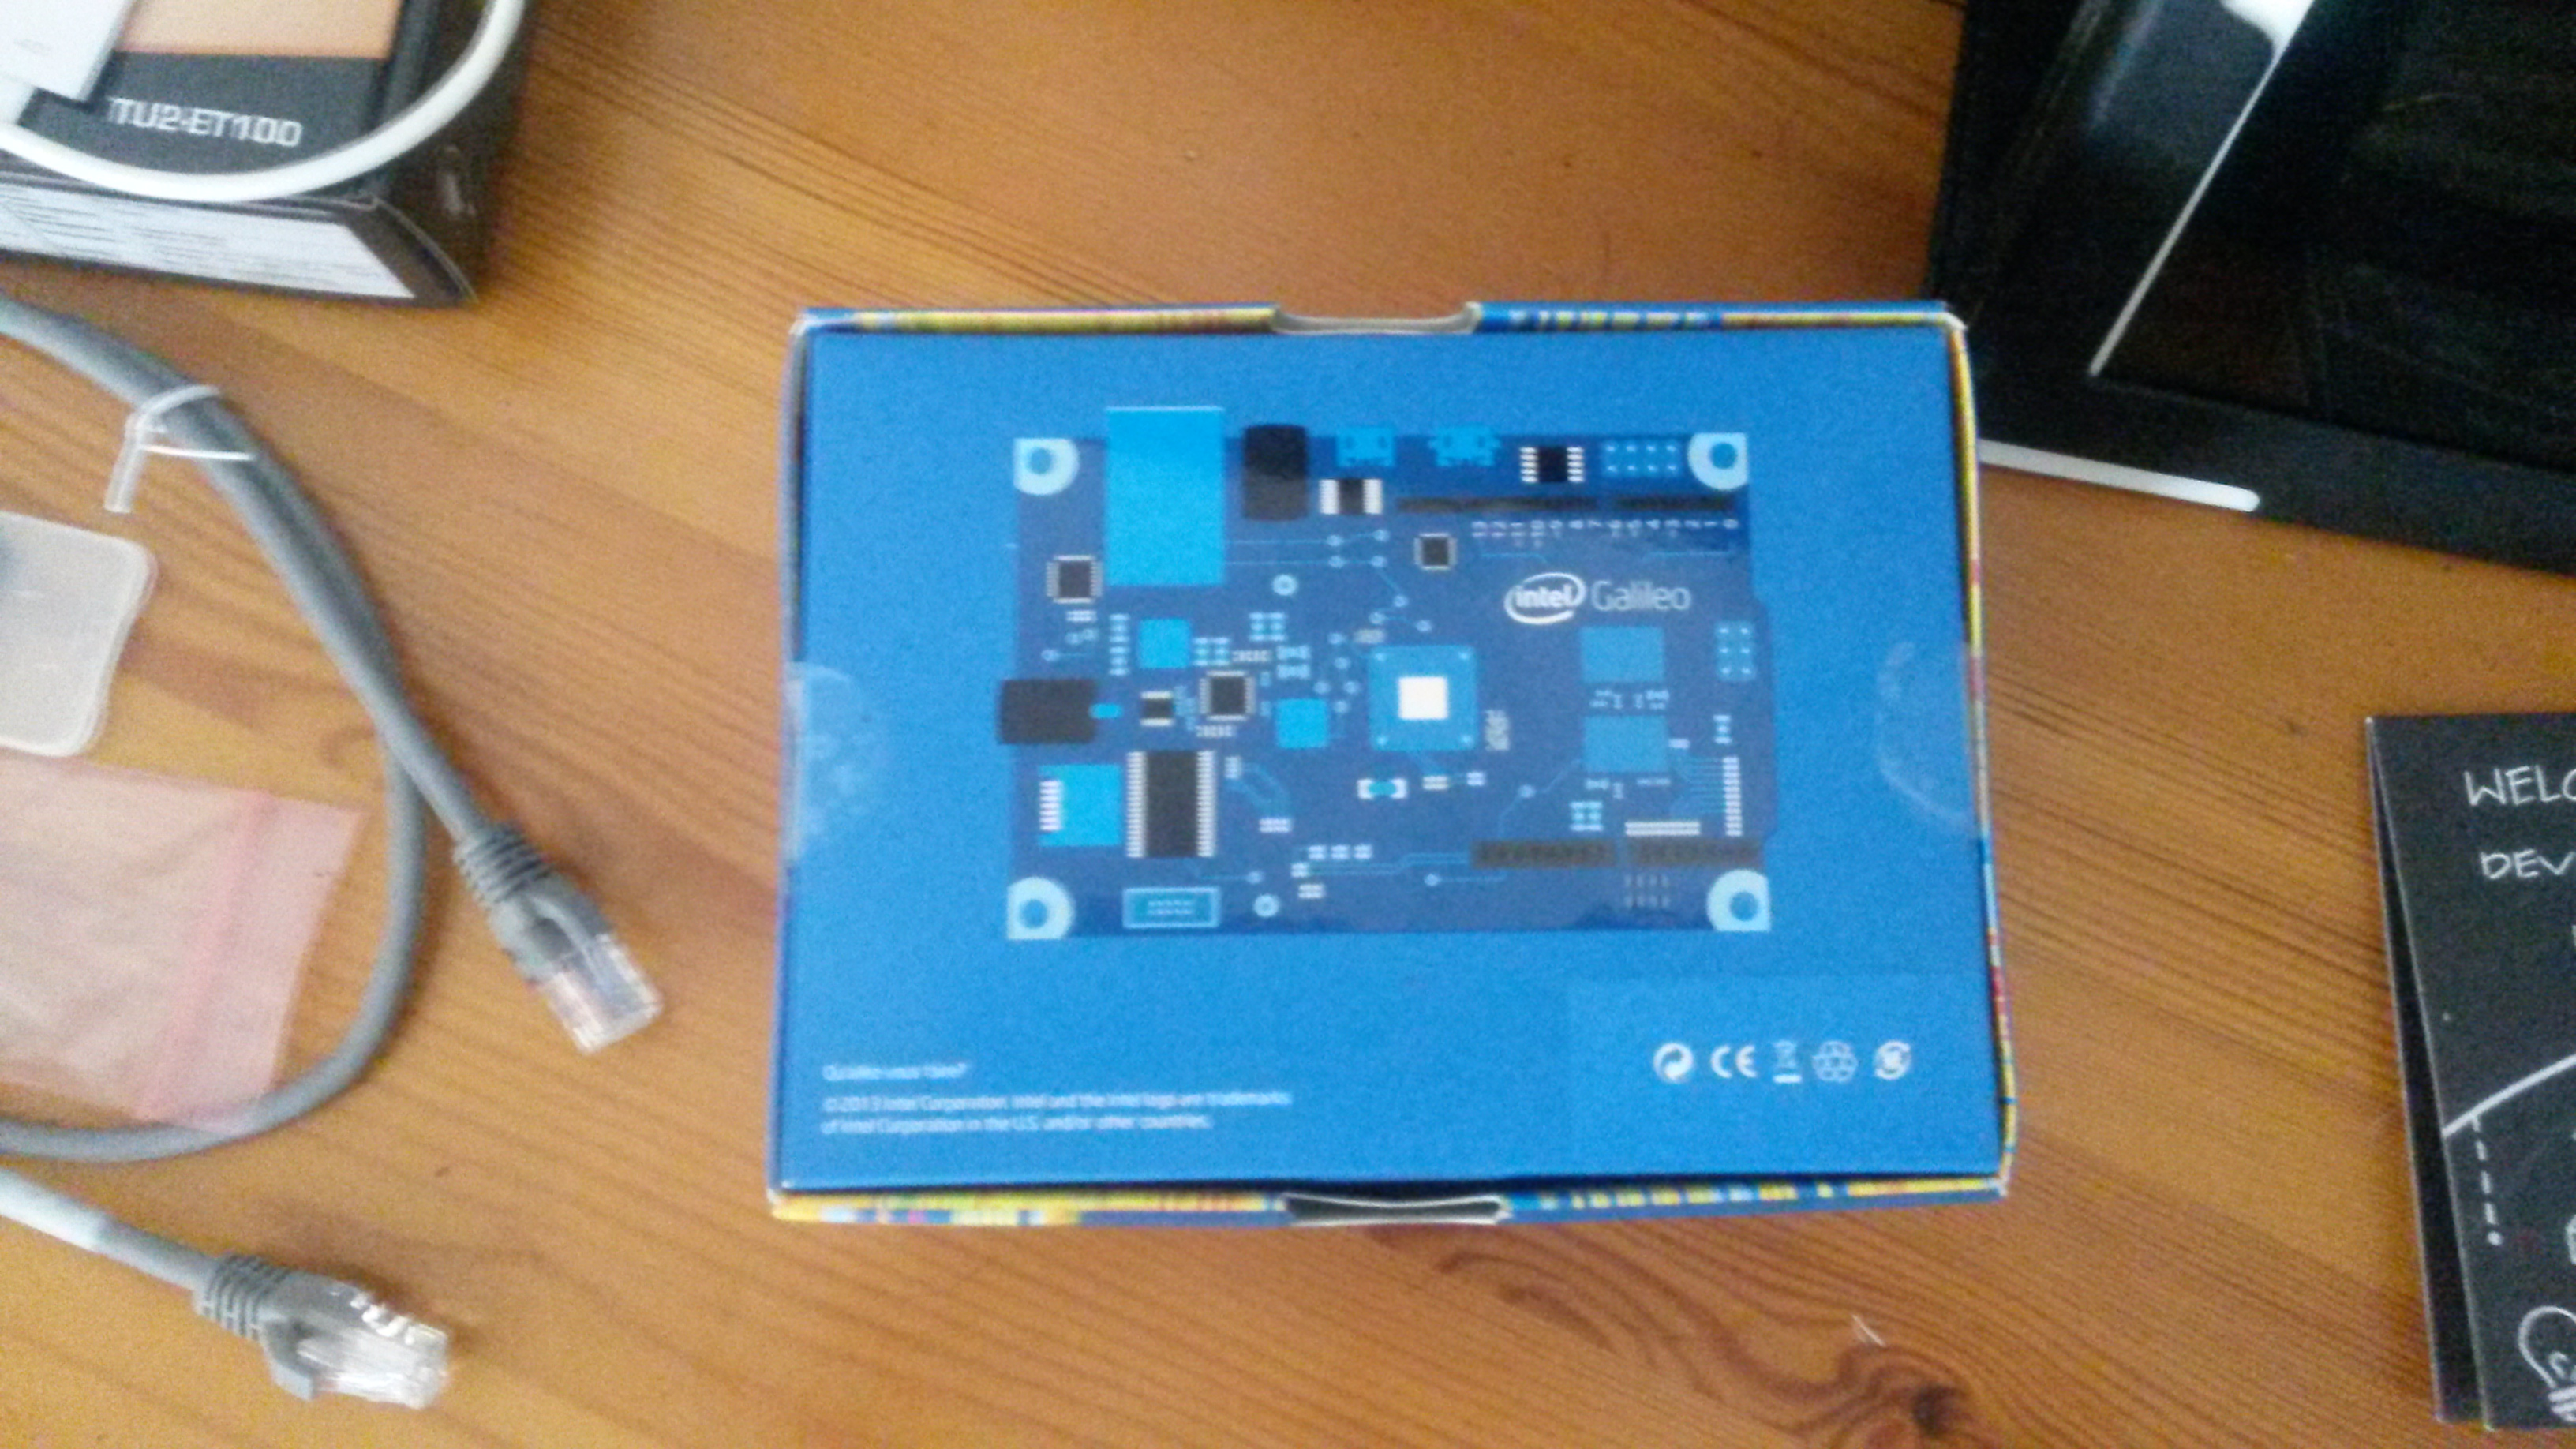 The Microsoft Windows Development Kit For IoT